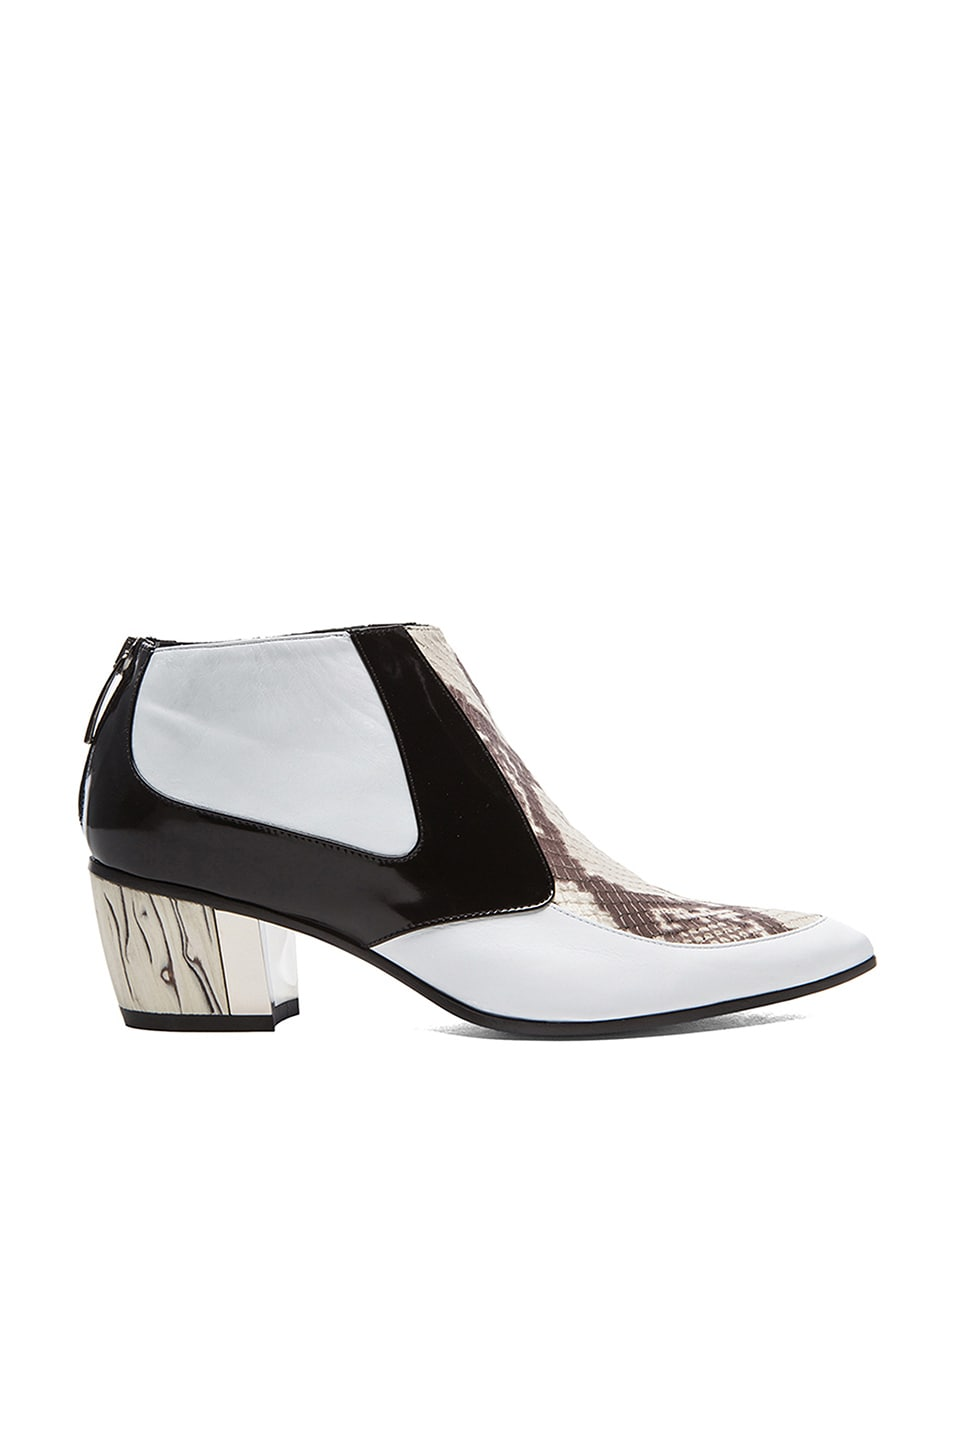 Image 1 of Rodarte Snakeskin Embossed Leather Booties in White, Black, & Grey